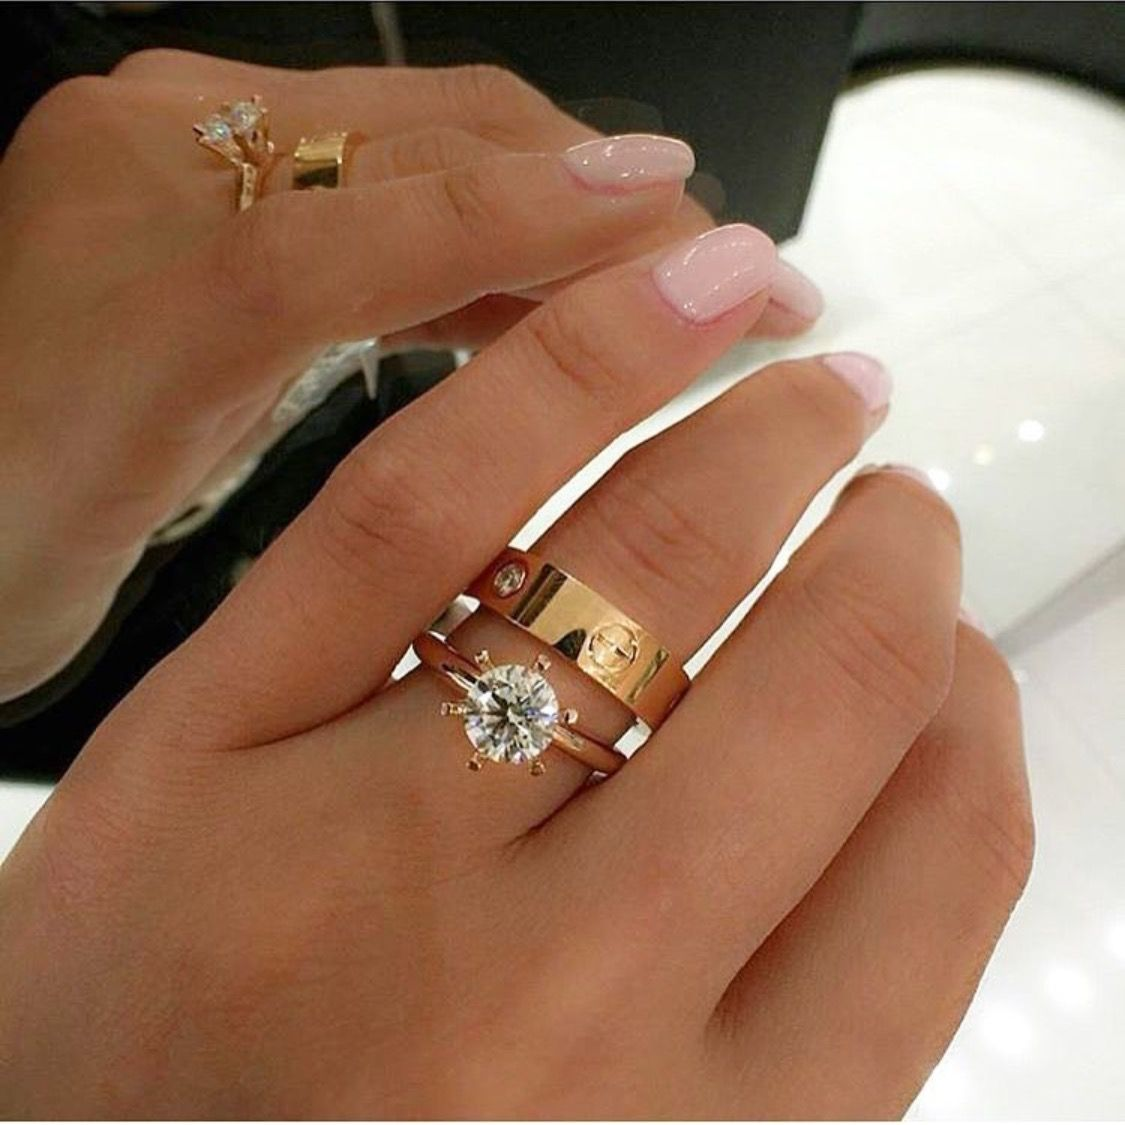 Pin By Myra On I Do In 2018 Pinterest Jewelry Rings And